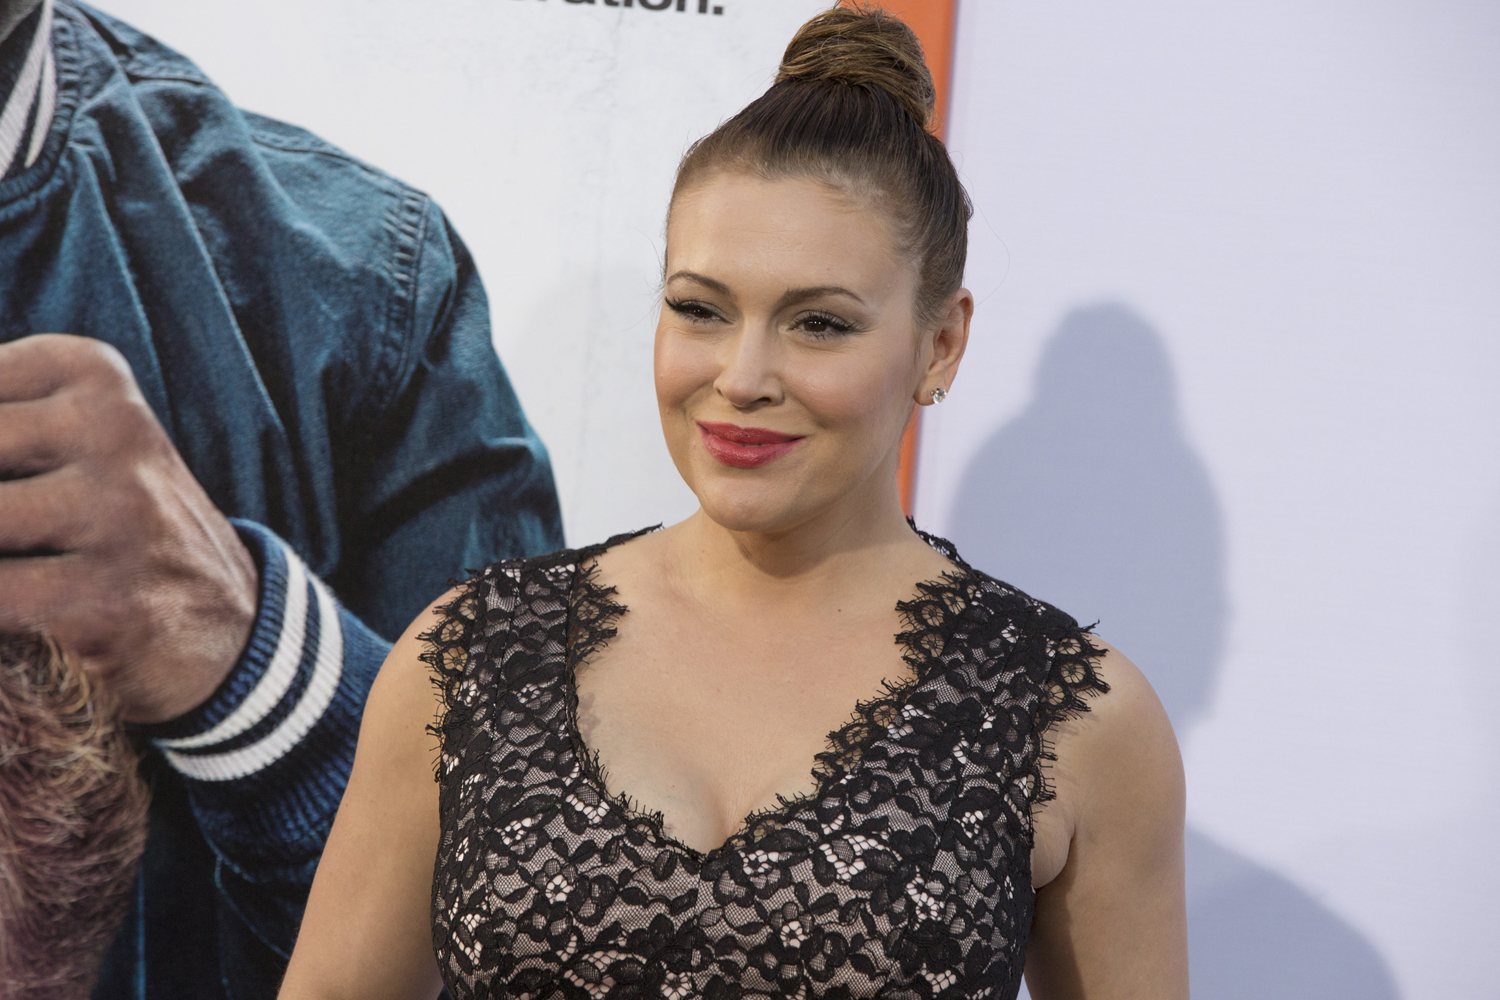 Alyssa Milano arrives at the LA premiere of Get Hard at the TCL Chinese Theatre on March 25, 2015, in Los Angeles